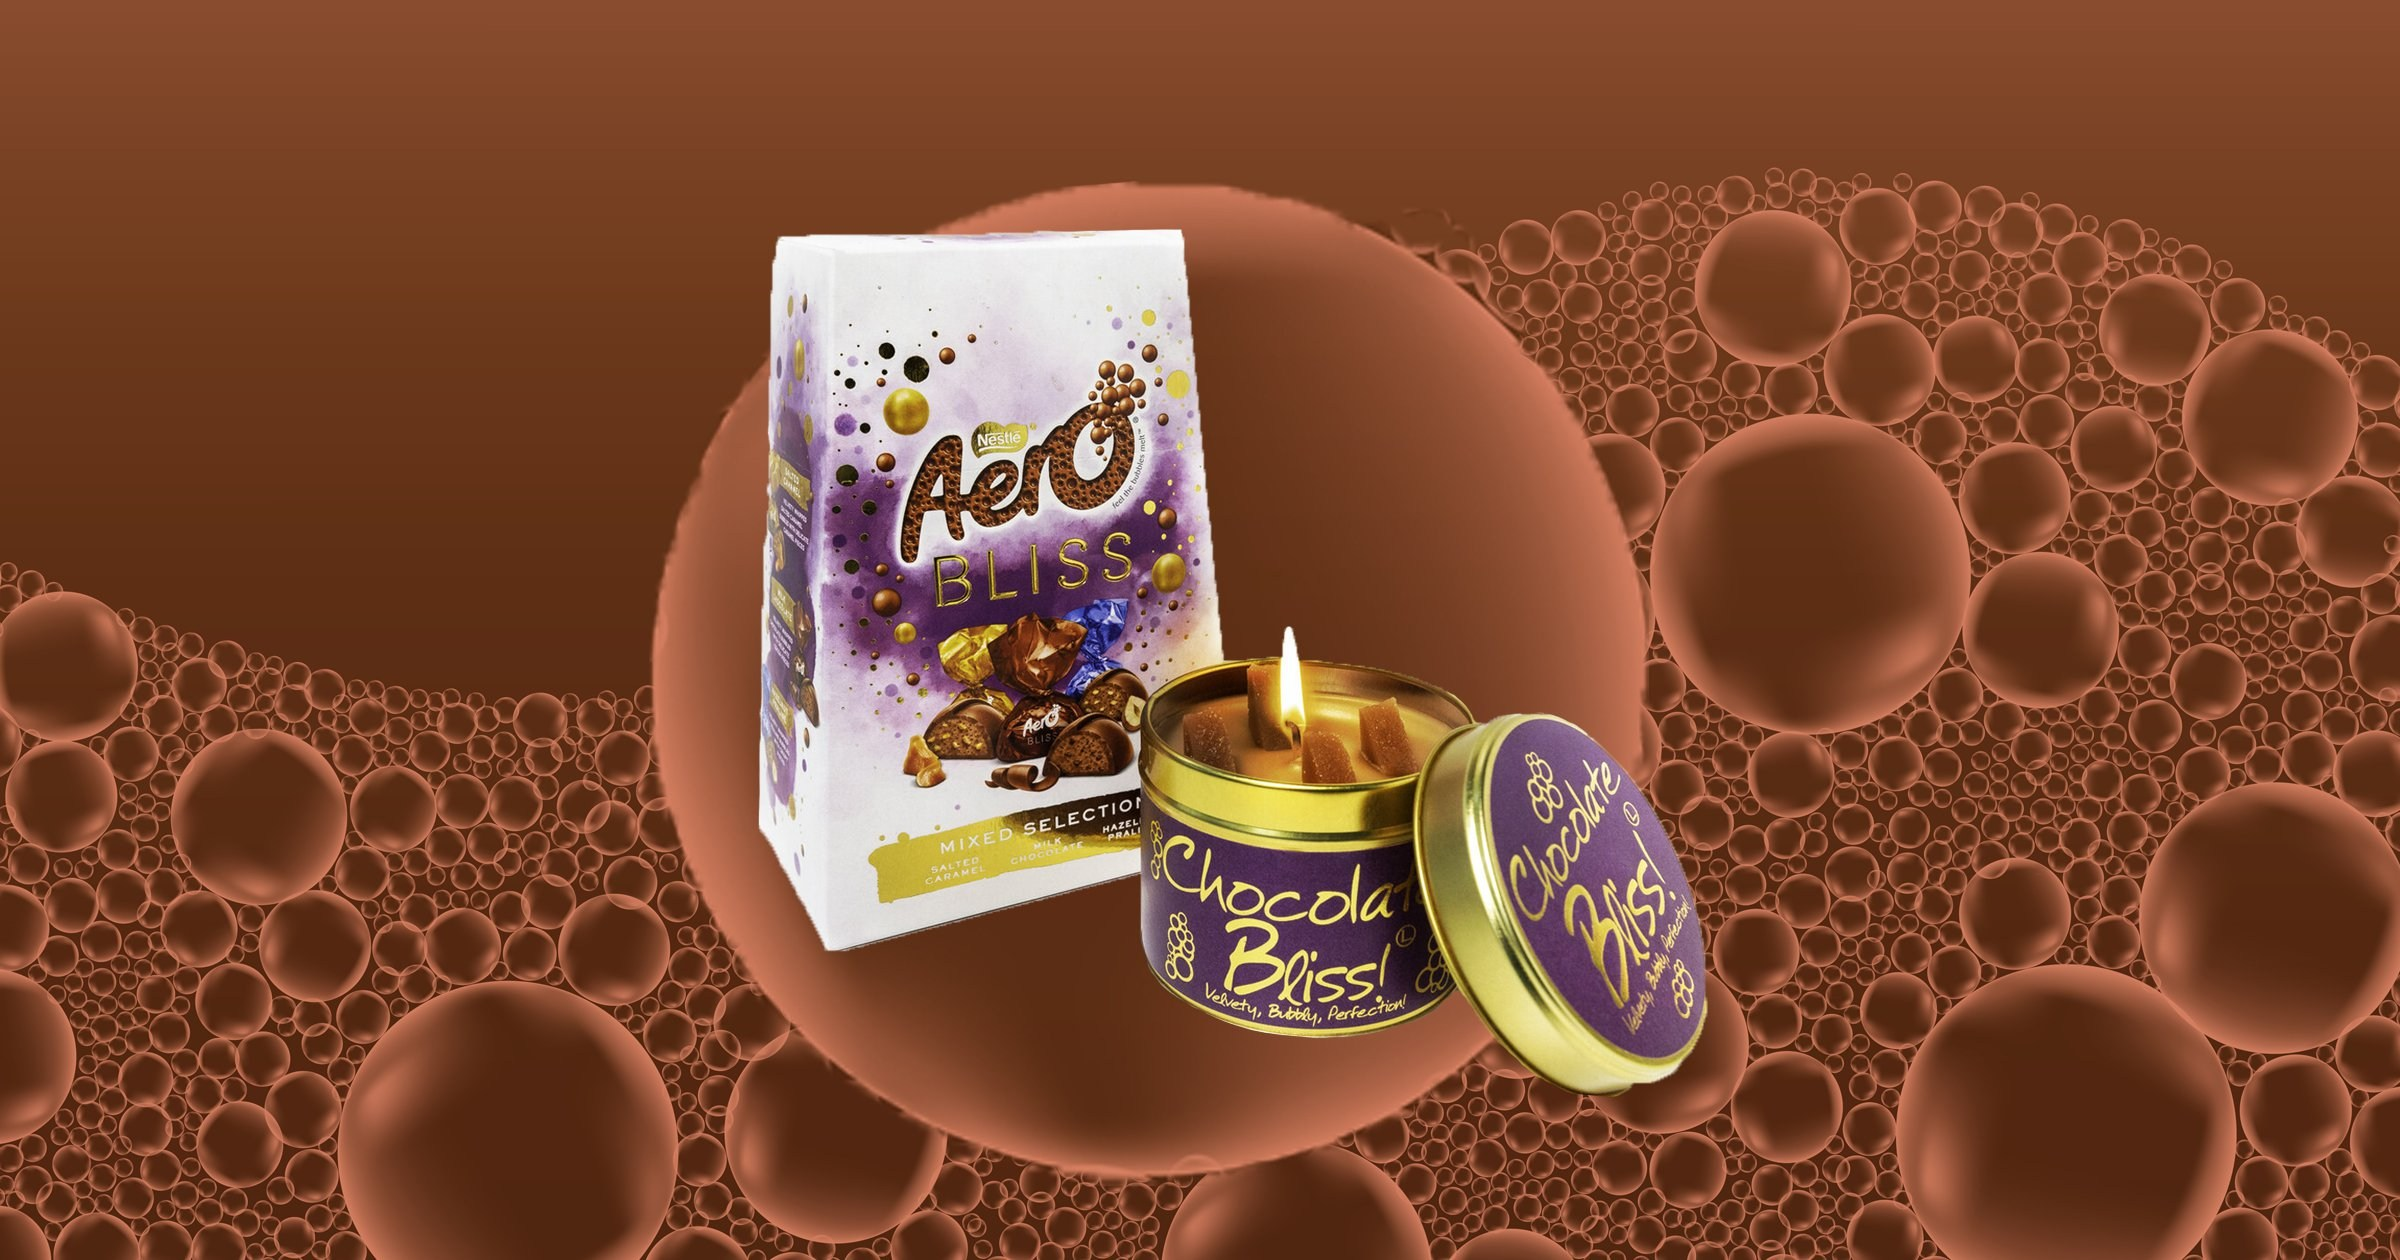 You can buy a scented candle that smells of Aero chocolate | Metro.co.uk